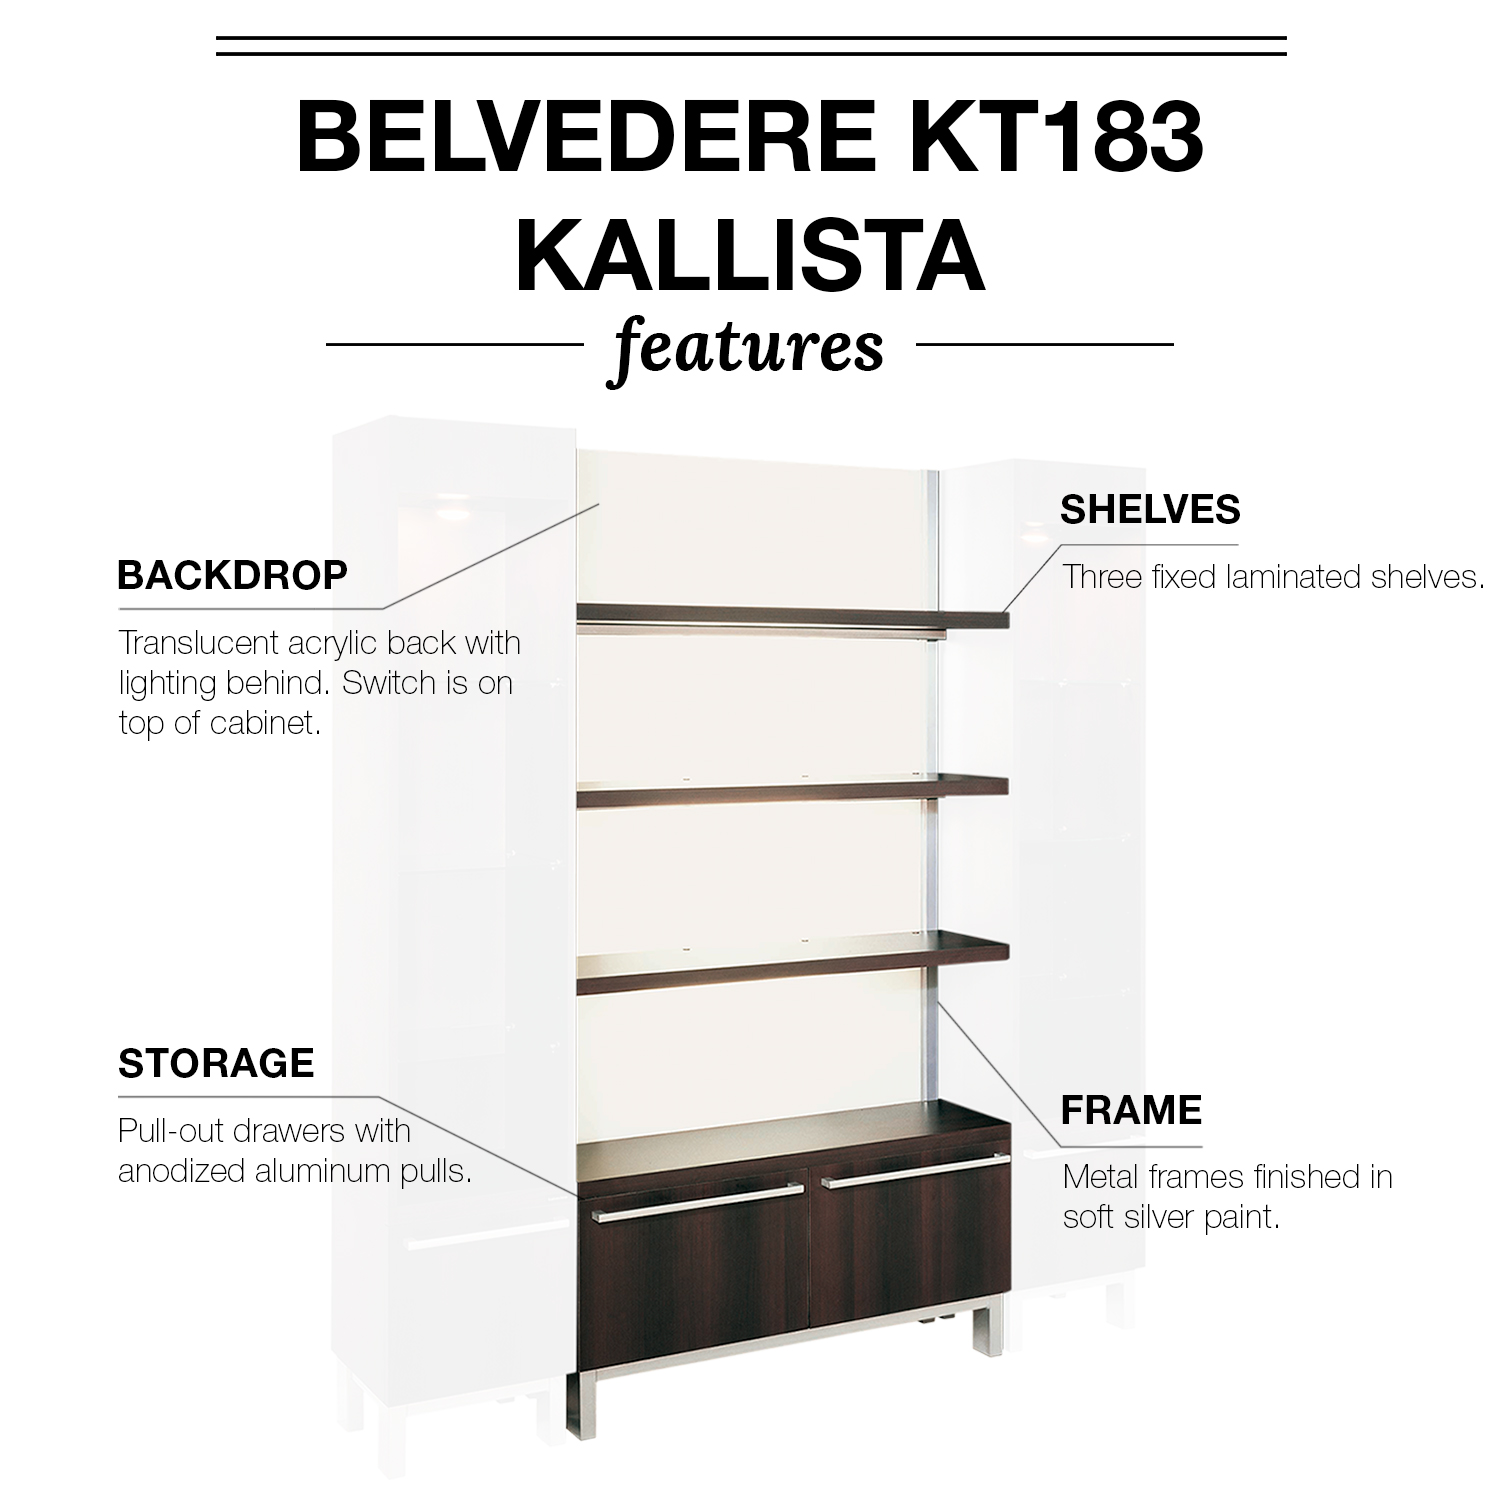 Belvedere KT182/KT183 Kallista Retail Display Cases alternative product image 3